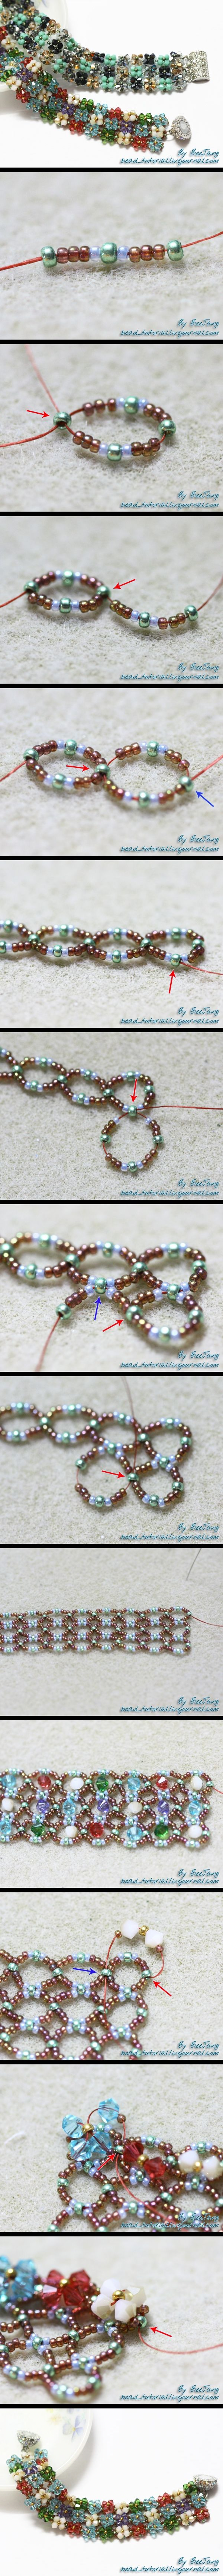 PAP bracelet So Beautiful...i wonder how the artist came to do this. at any rate, i always loved daisy chain flowers - this is a step beyond...